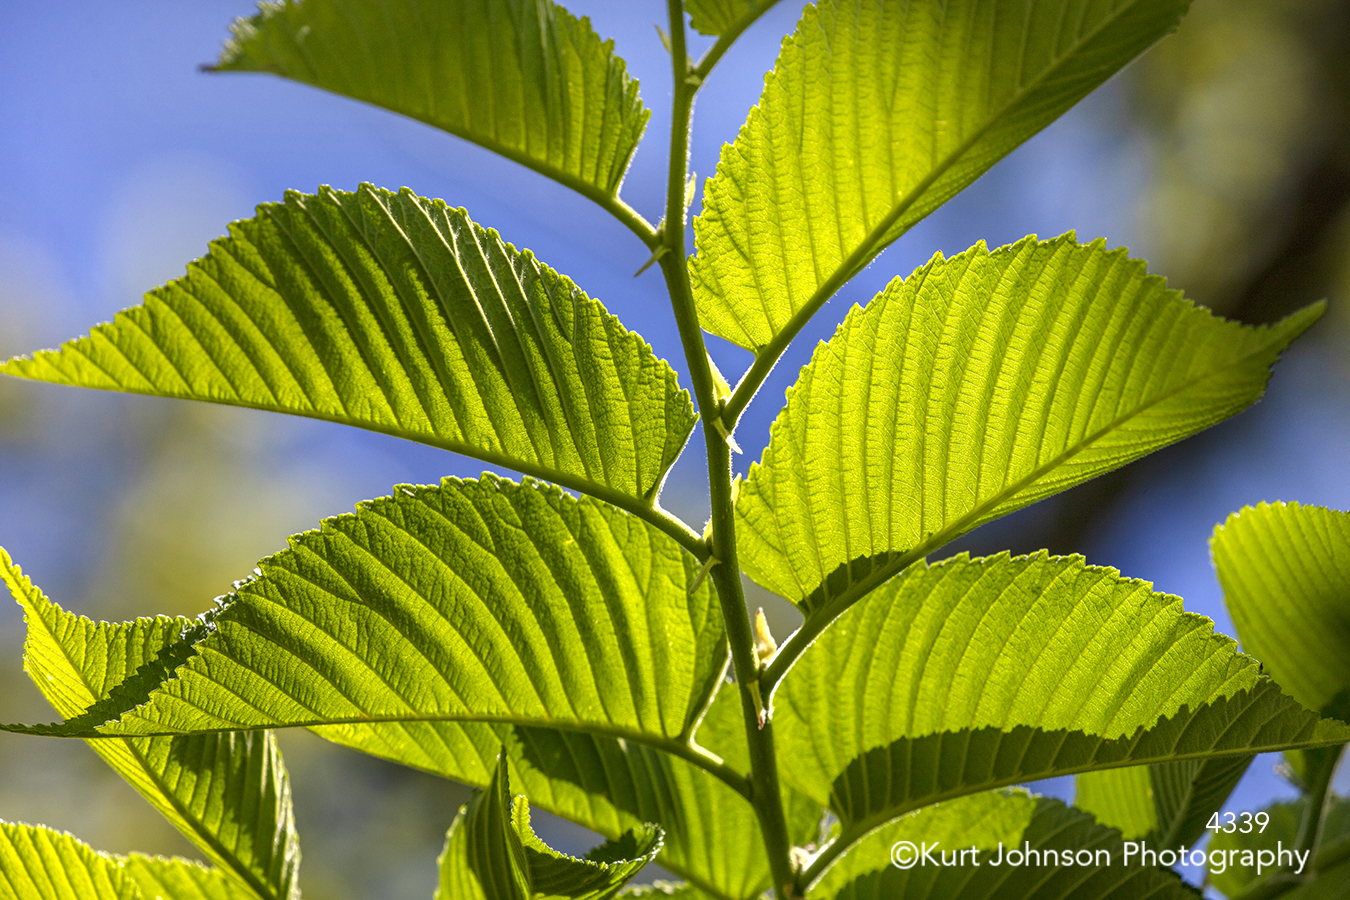 green leaves sunlight lines details close up macro plant tree branch